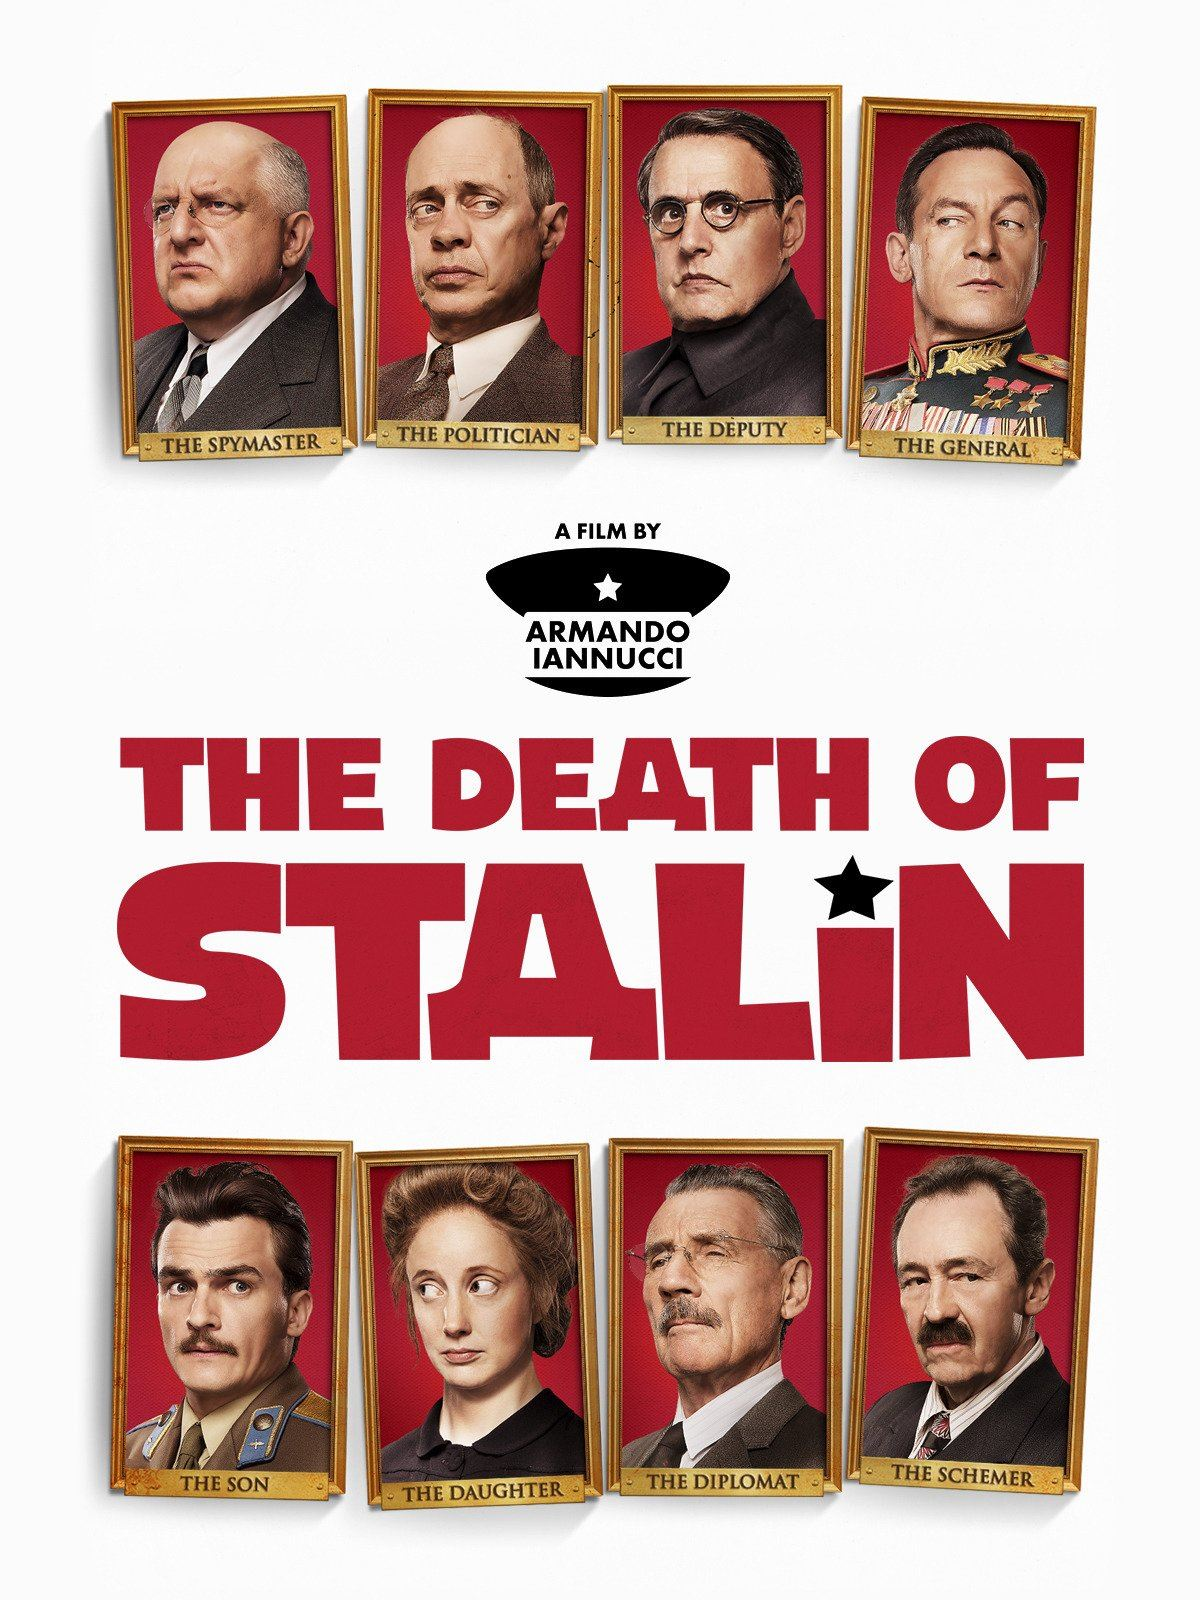 Bio: The Death of Stalin